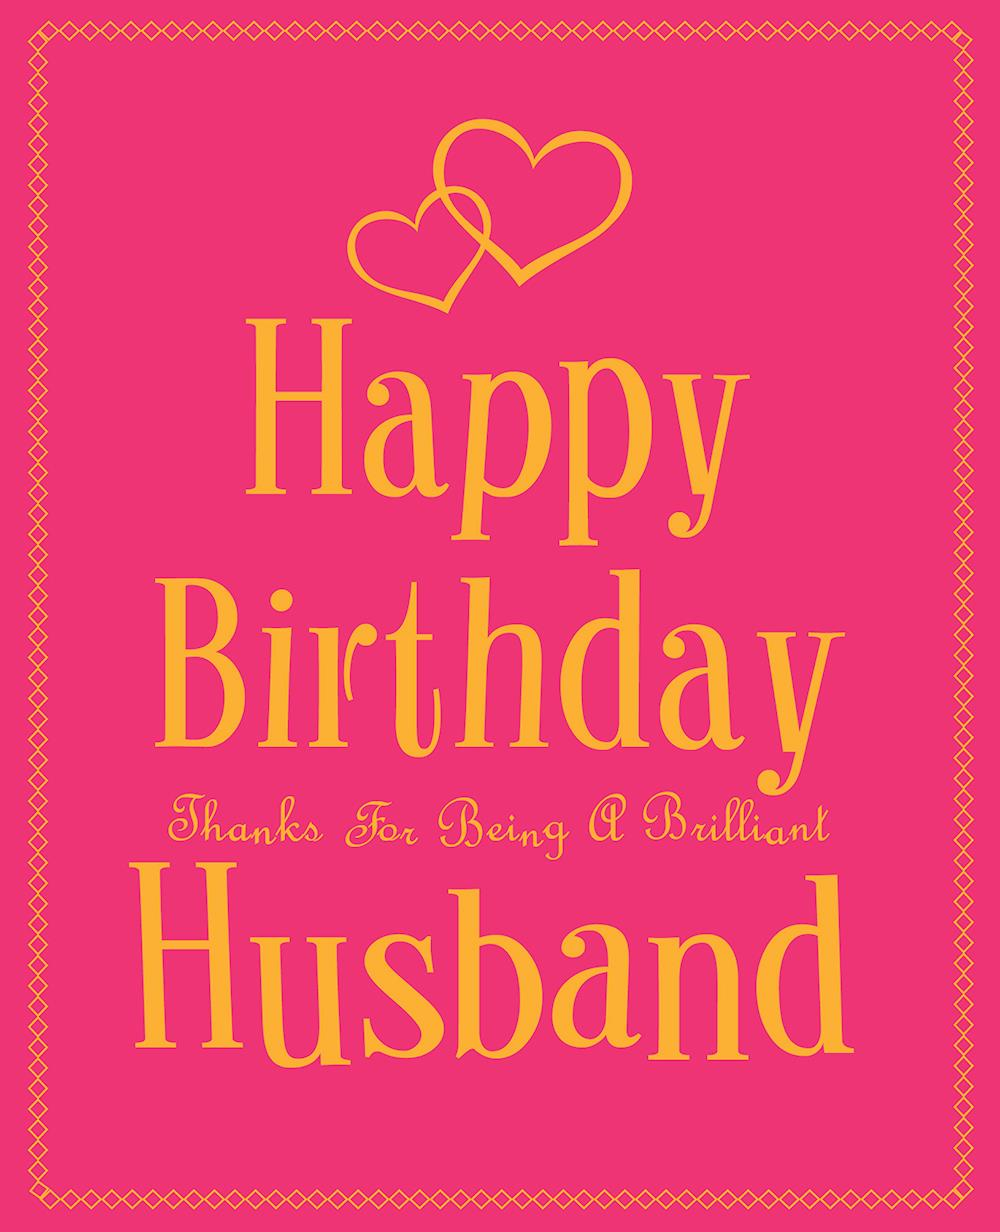 happy birthday to your husband ; ebcc9d54db8b39a905416890f11f81b2